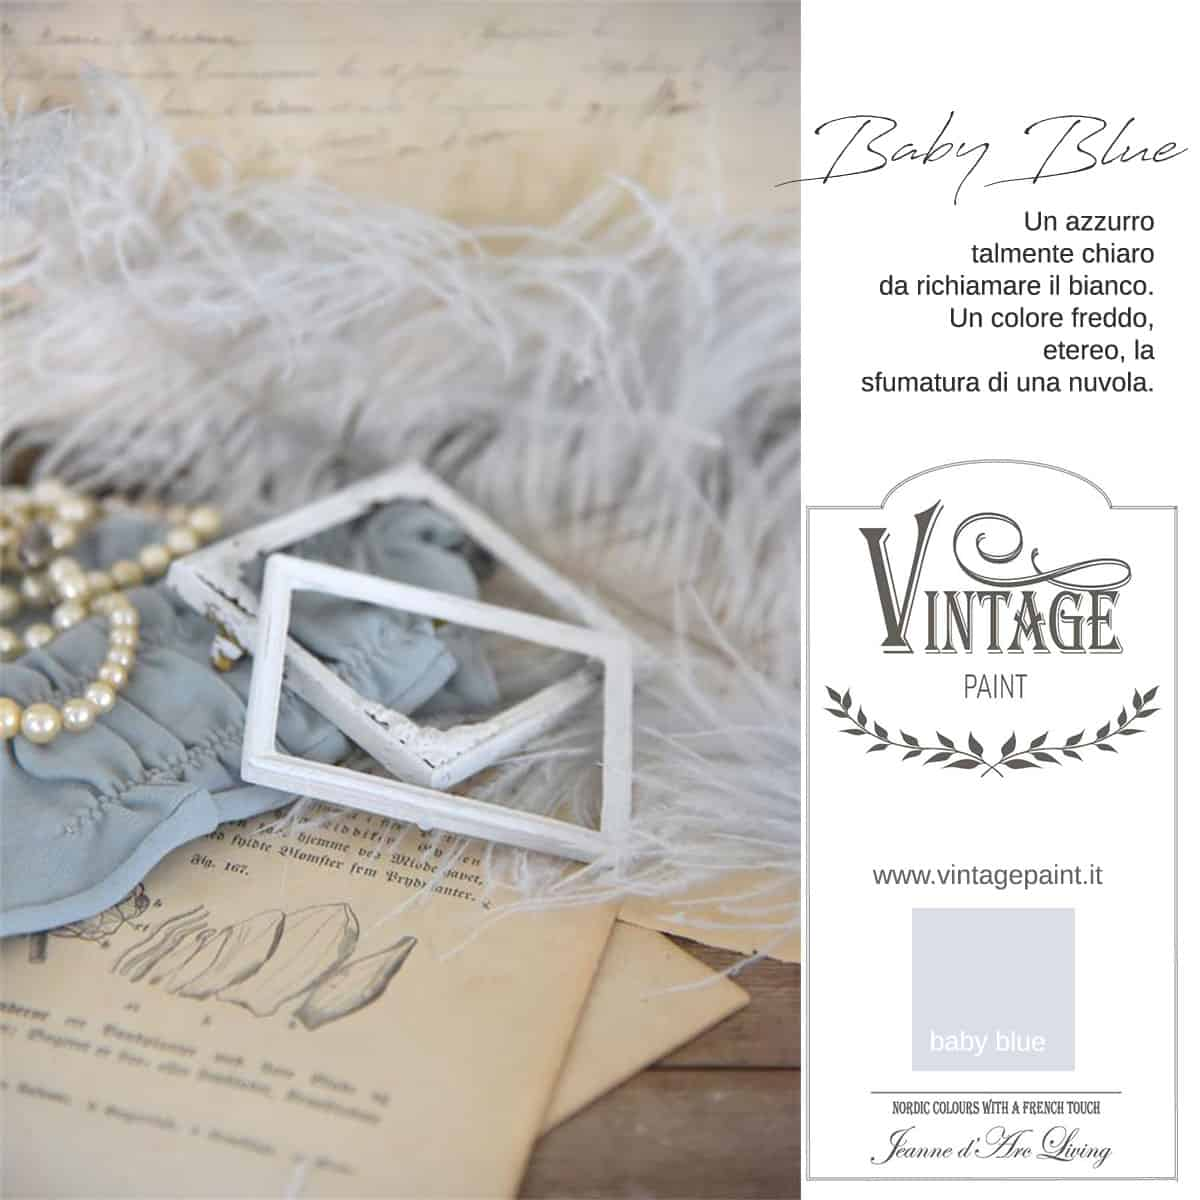 baby blue blu azzurro vintage chalk paint vernici shabby chic autentico look gesso